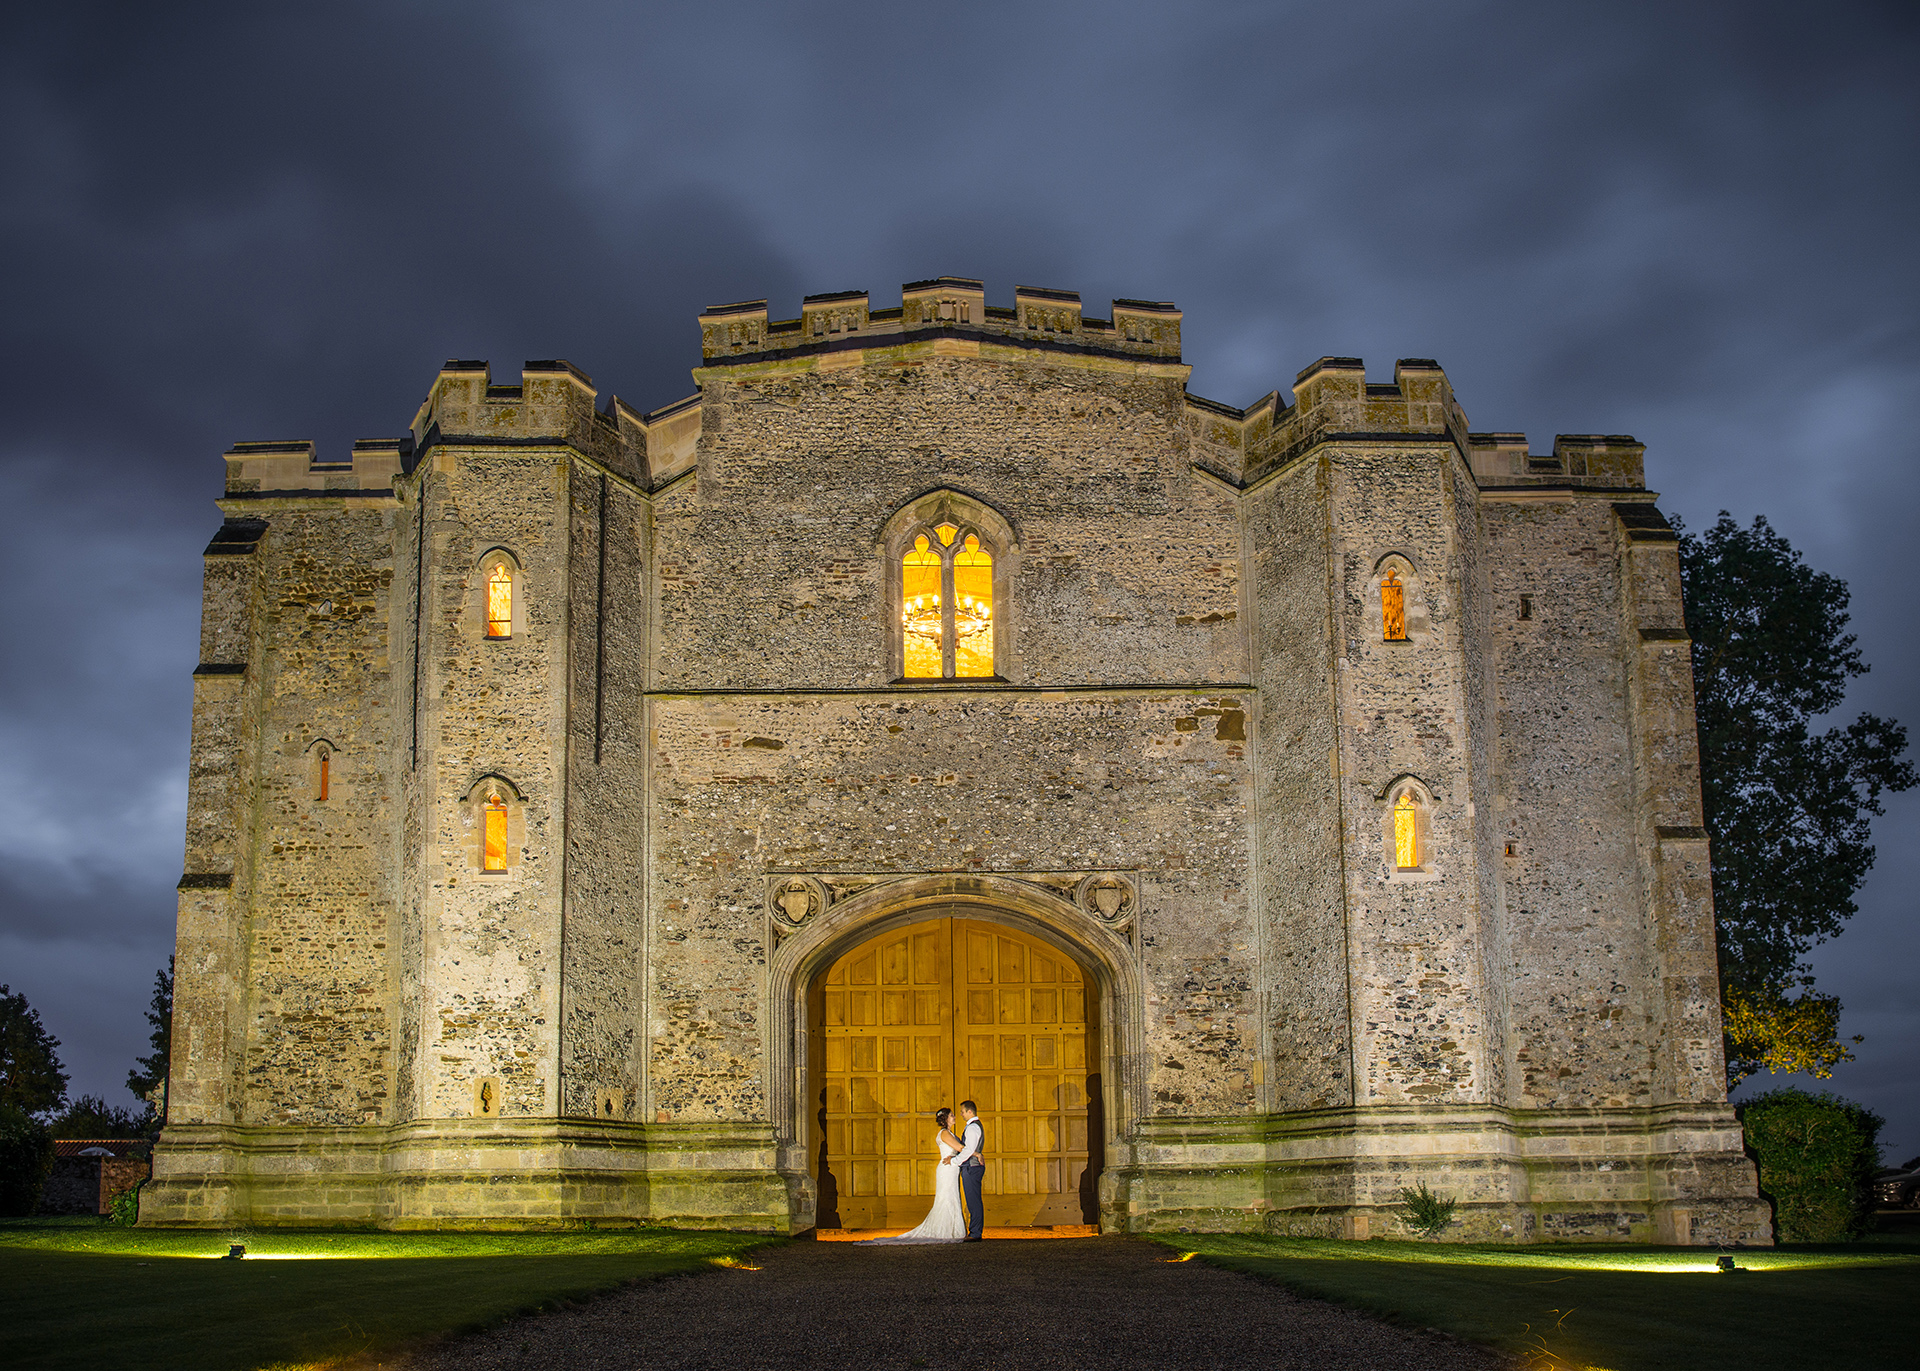 The bride and groom pose for a wedding photo in the evening at Pentney Abbey